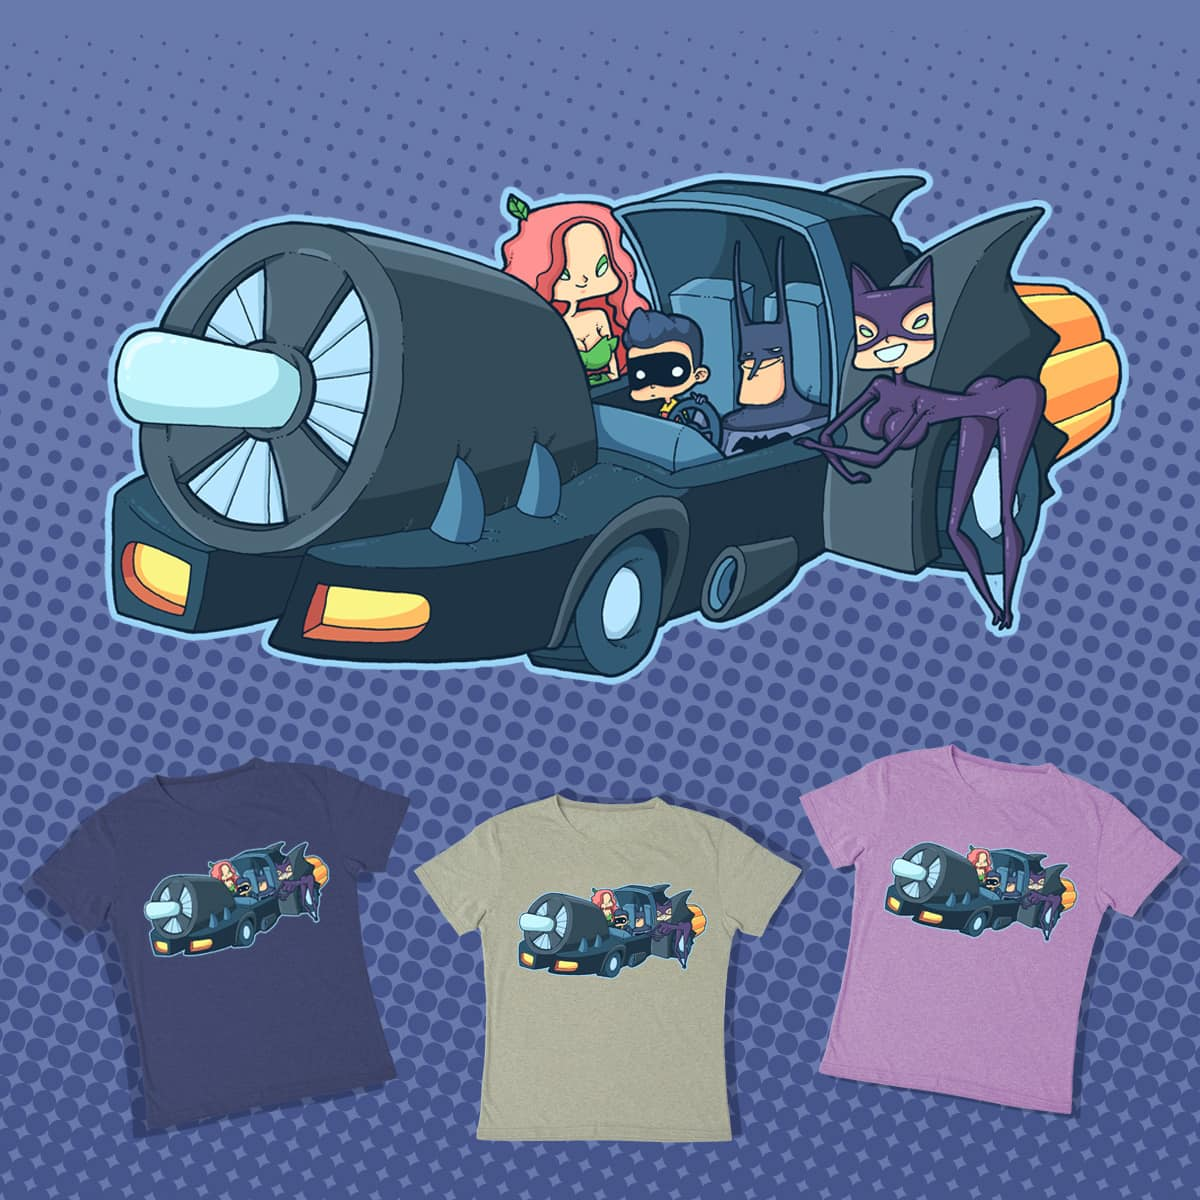 BaDmobile by lost-angel-less on Threadless